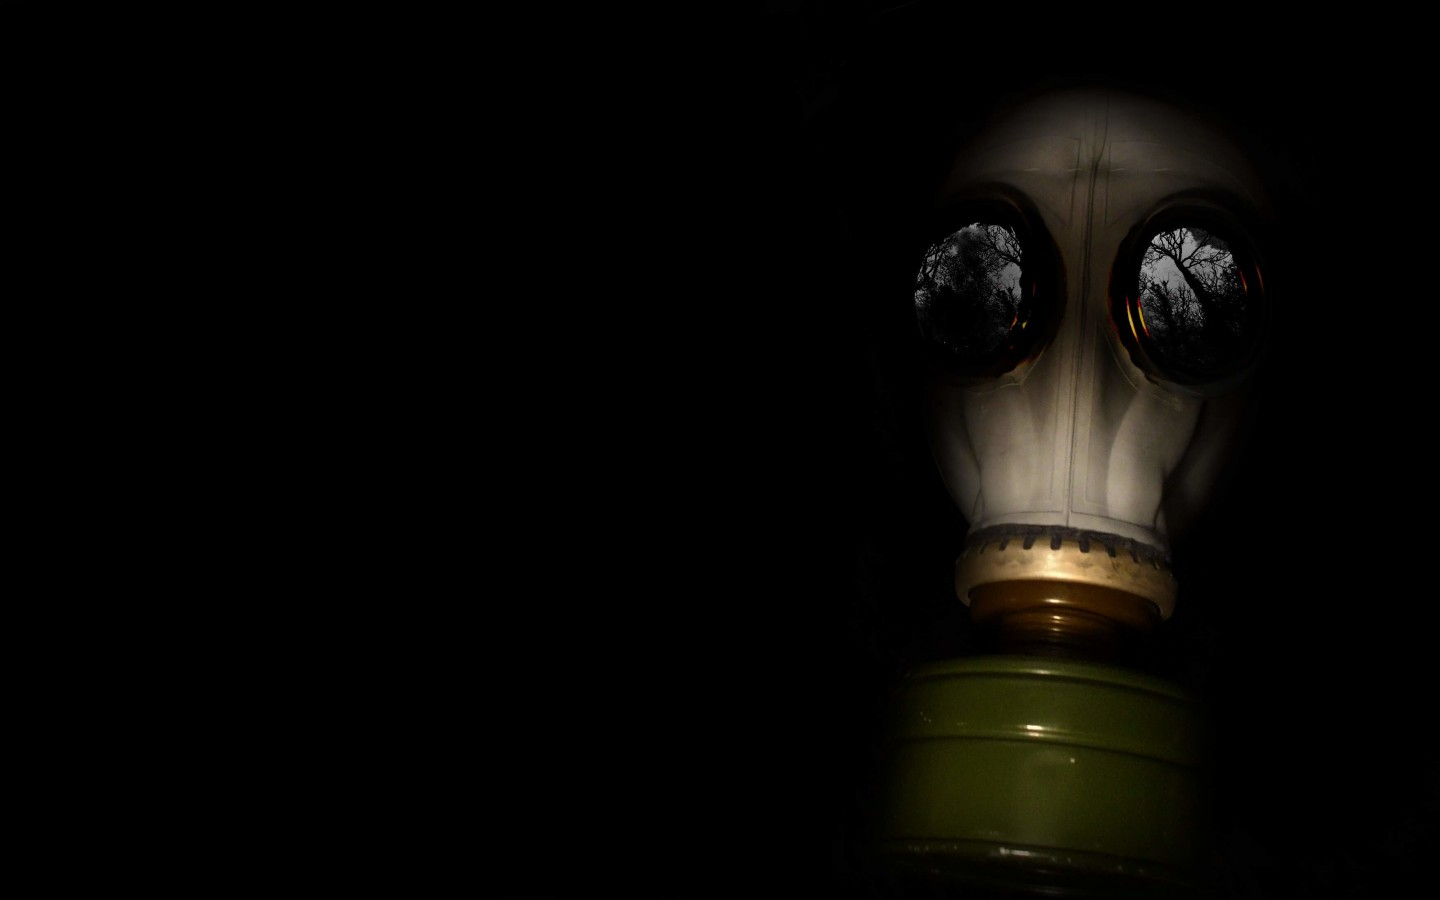 WWII Gas Mask Wallpaper for Desktop 1440x900